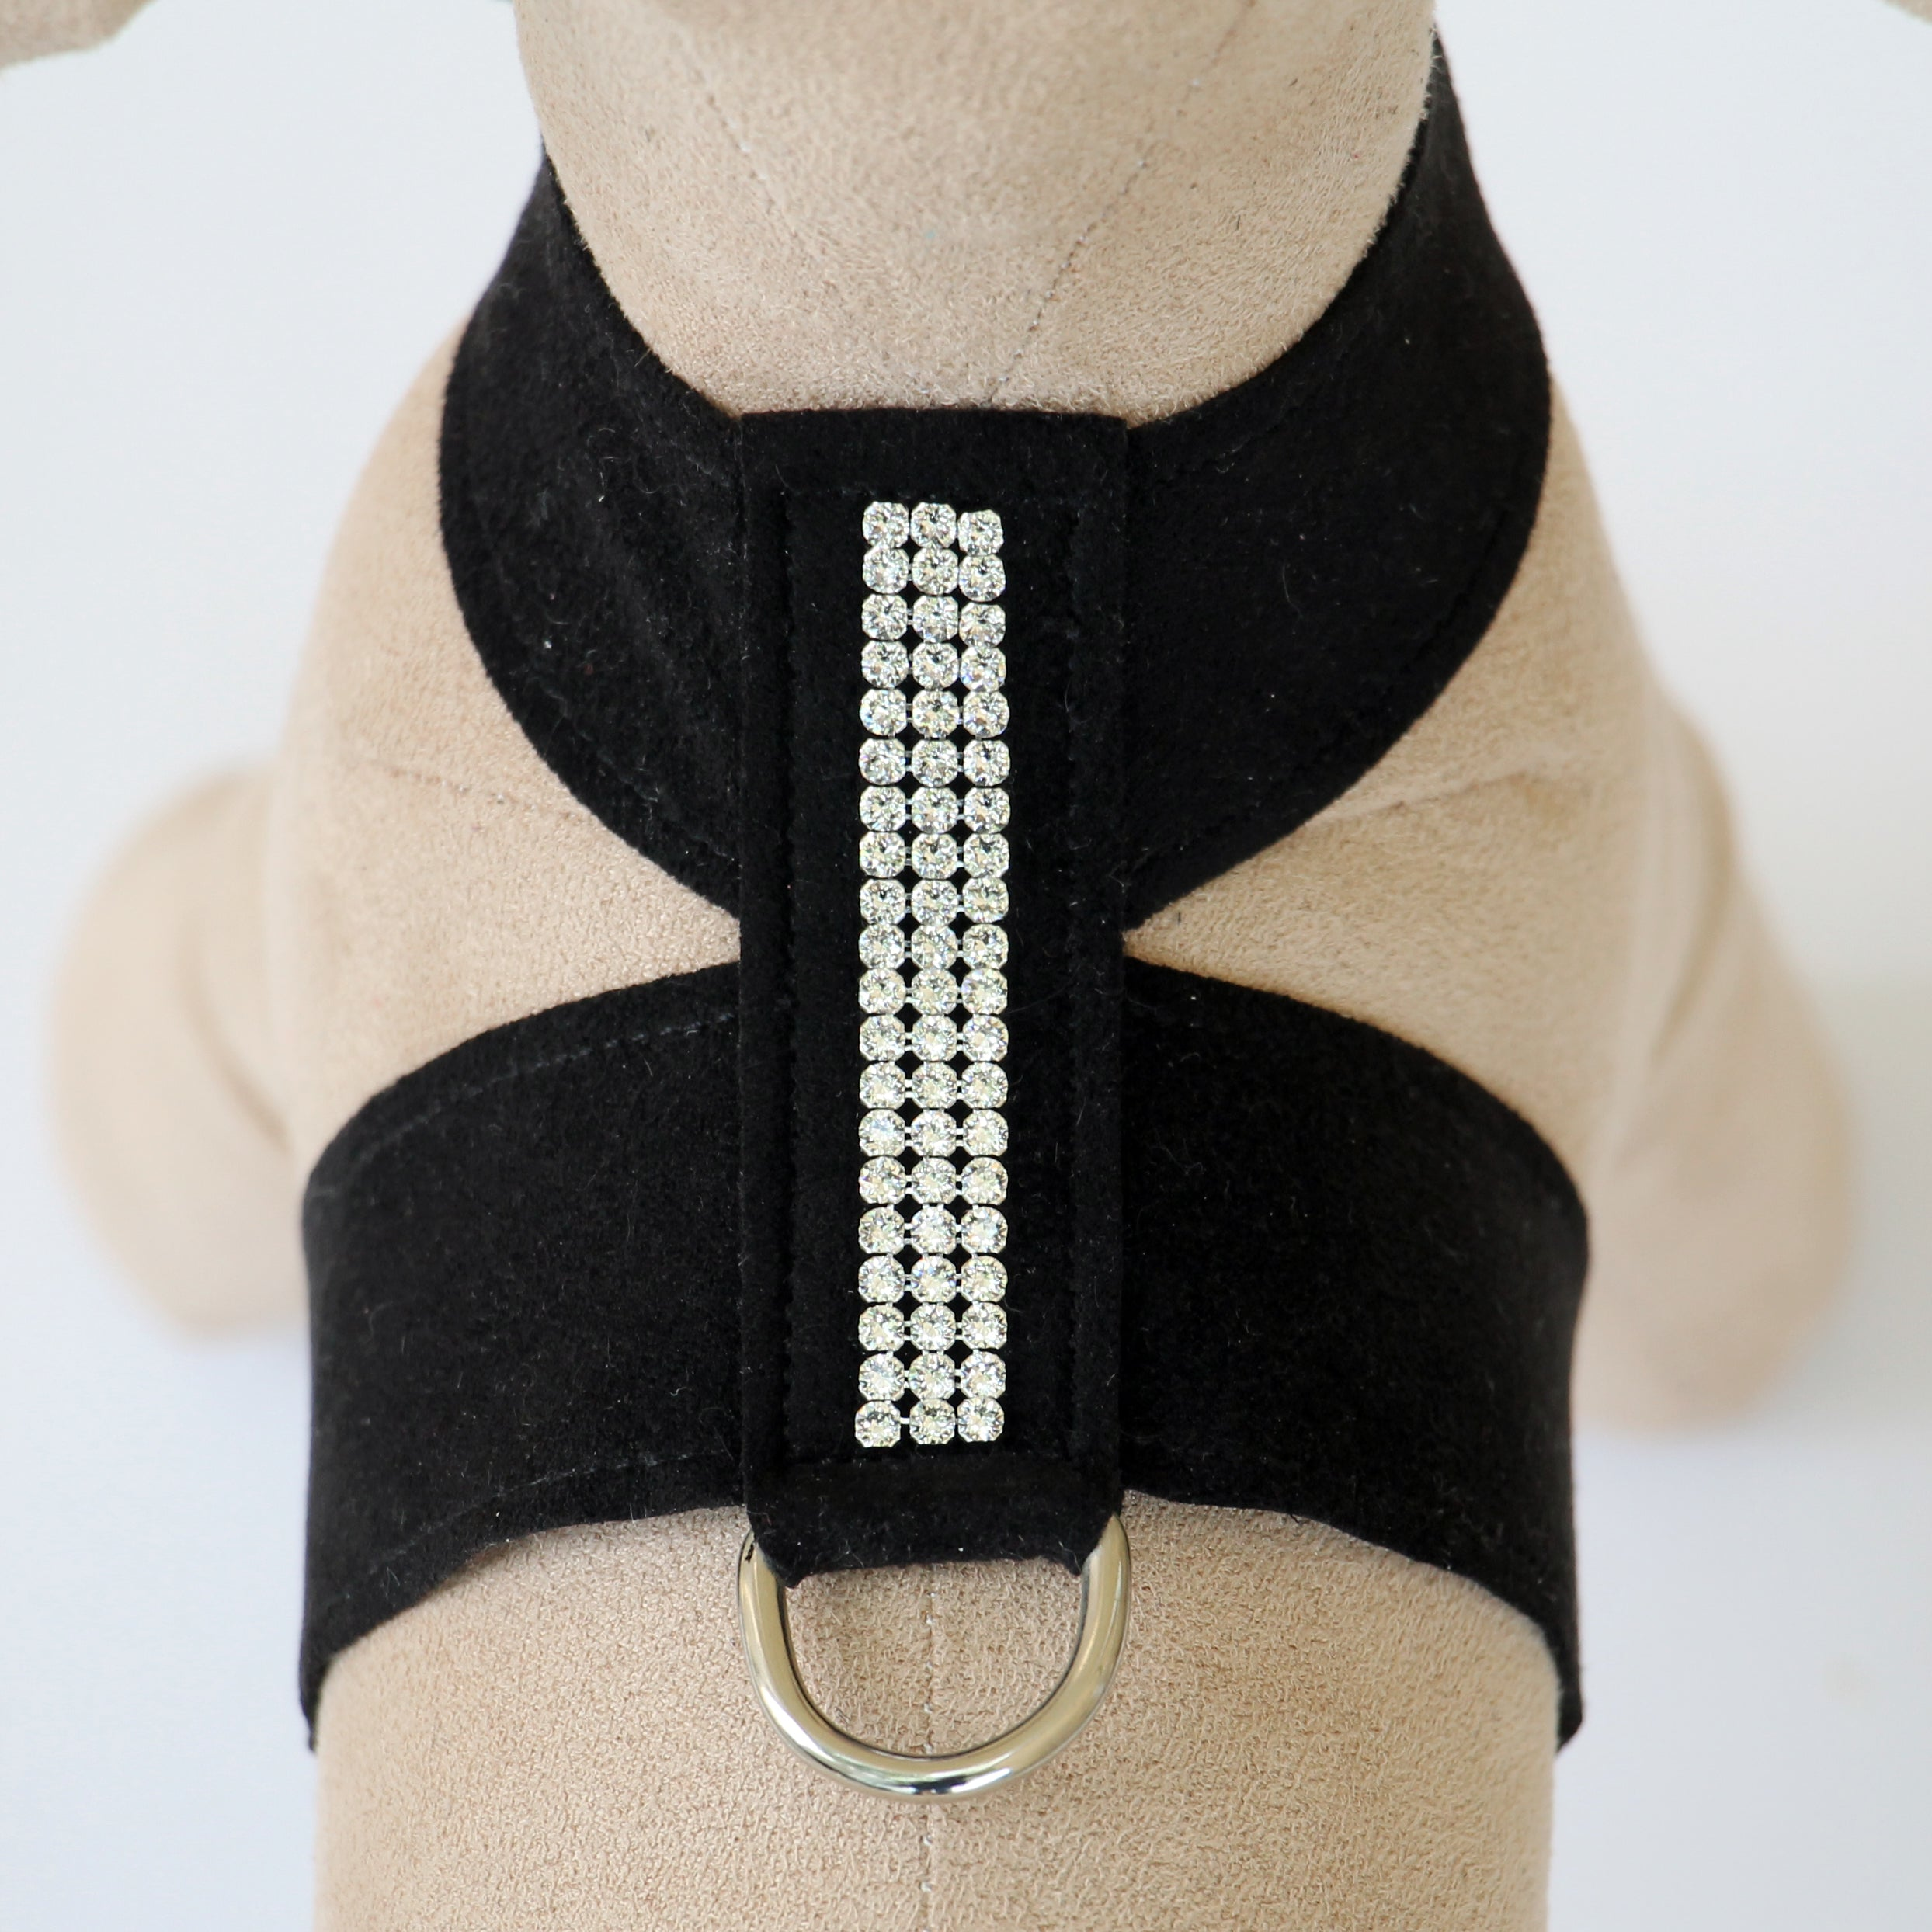 Giltmore 3-Row Crystal Pet Harness: Black